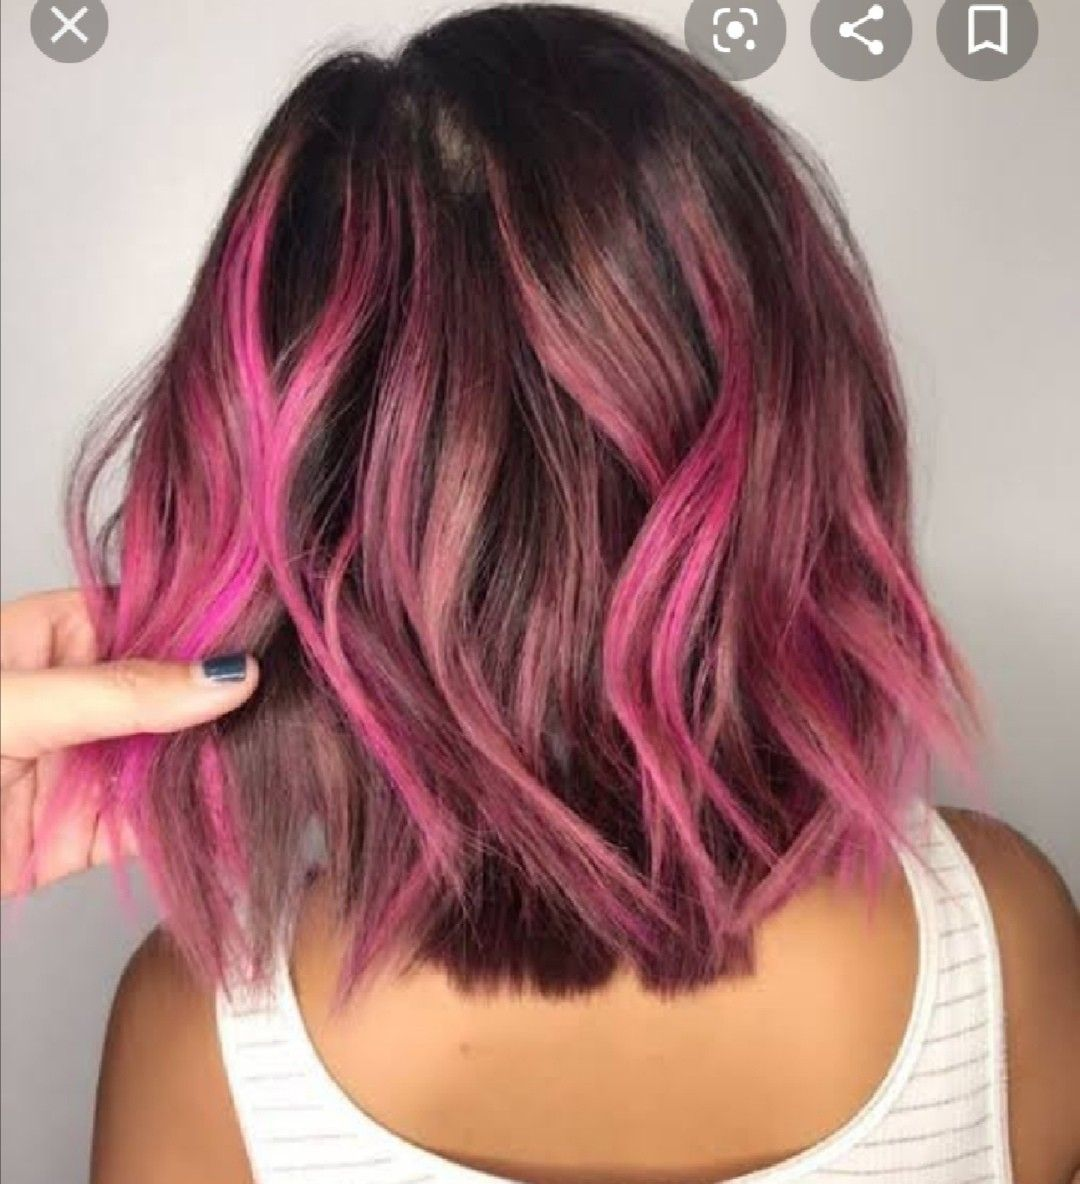 Pin By Pink Piscis On Hair In 2020 Pink Hair Highlights Hair Styles Pink Ombre Hair